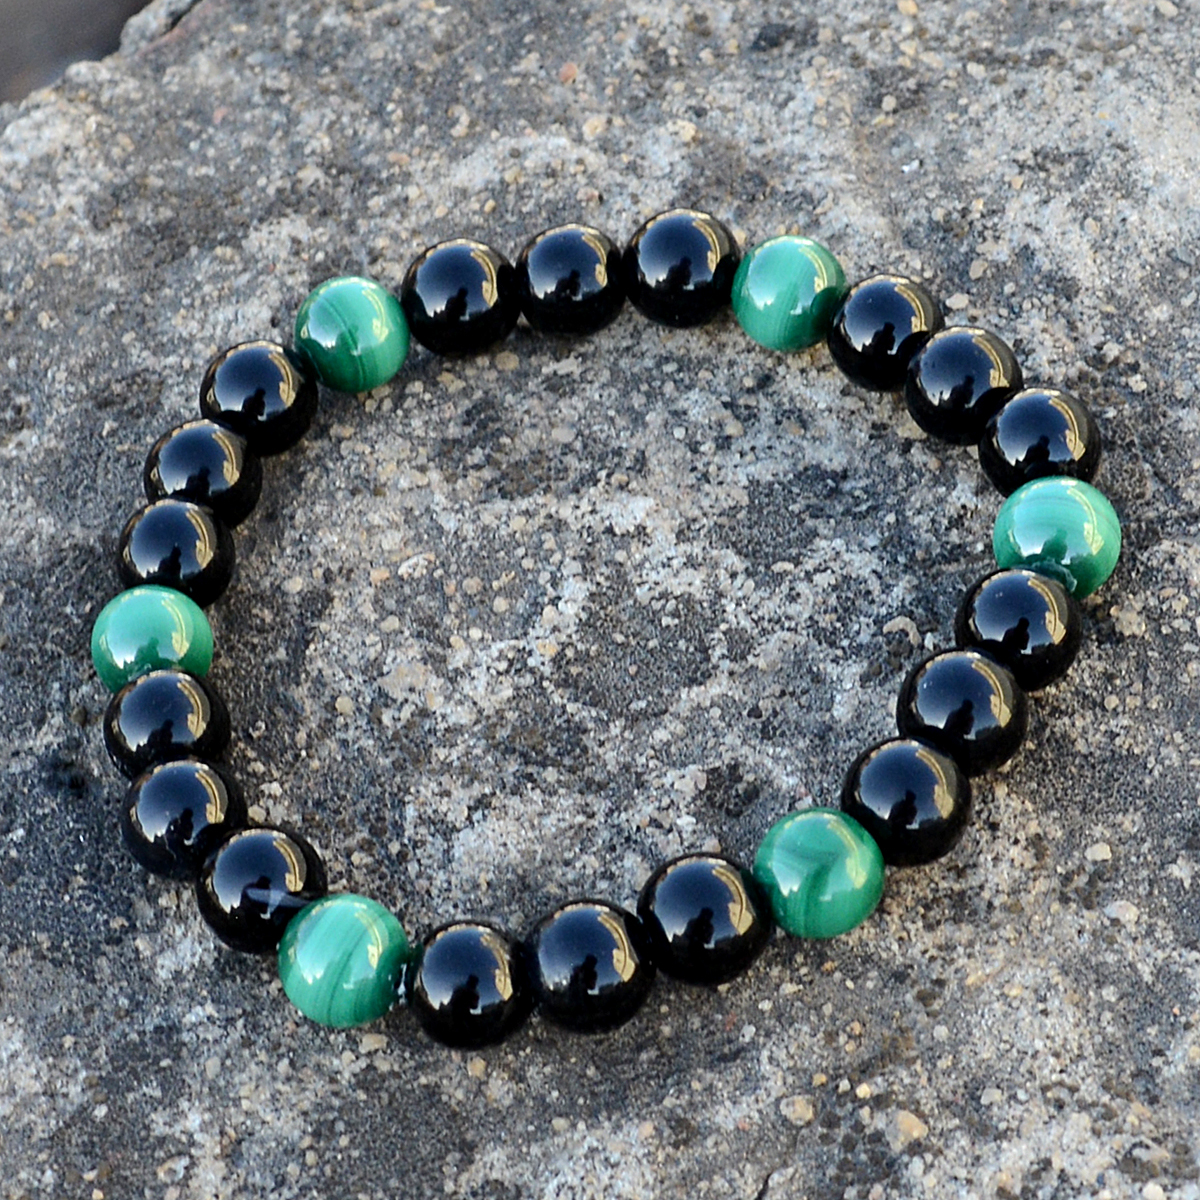 Green Tiger Eye & Black Onyx Bracelet PG-156283